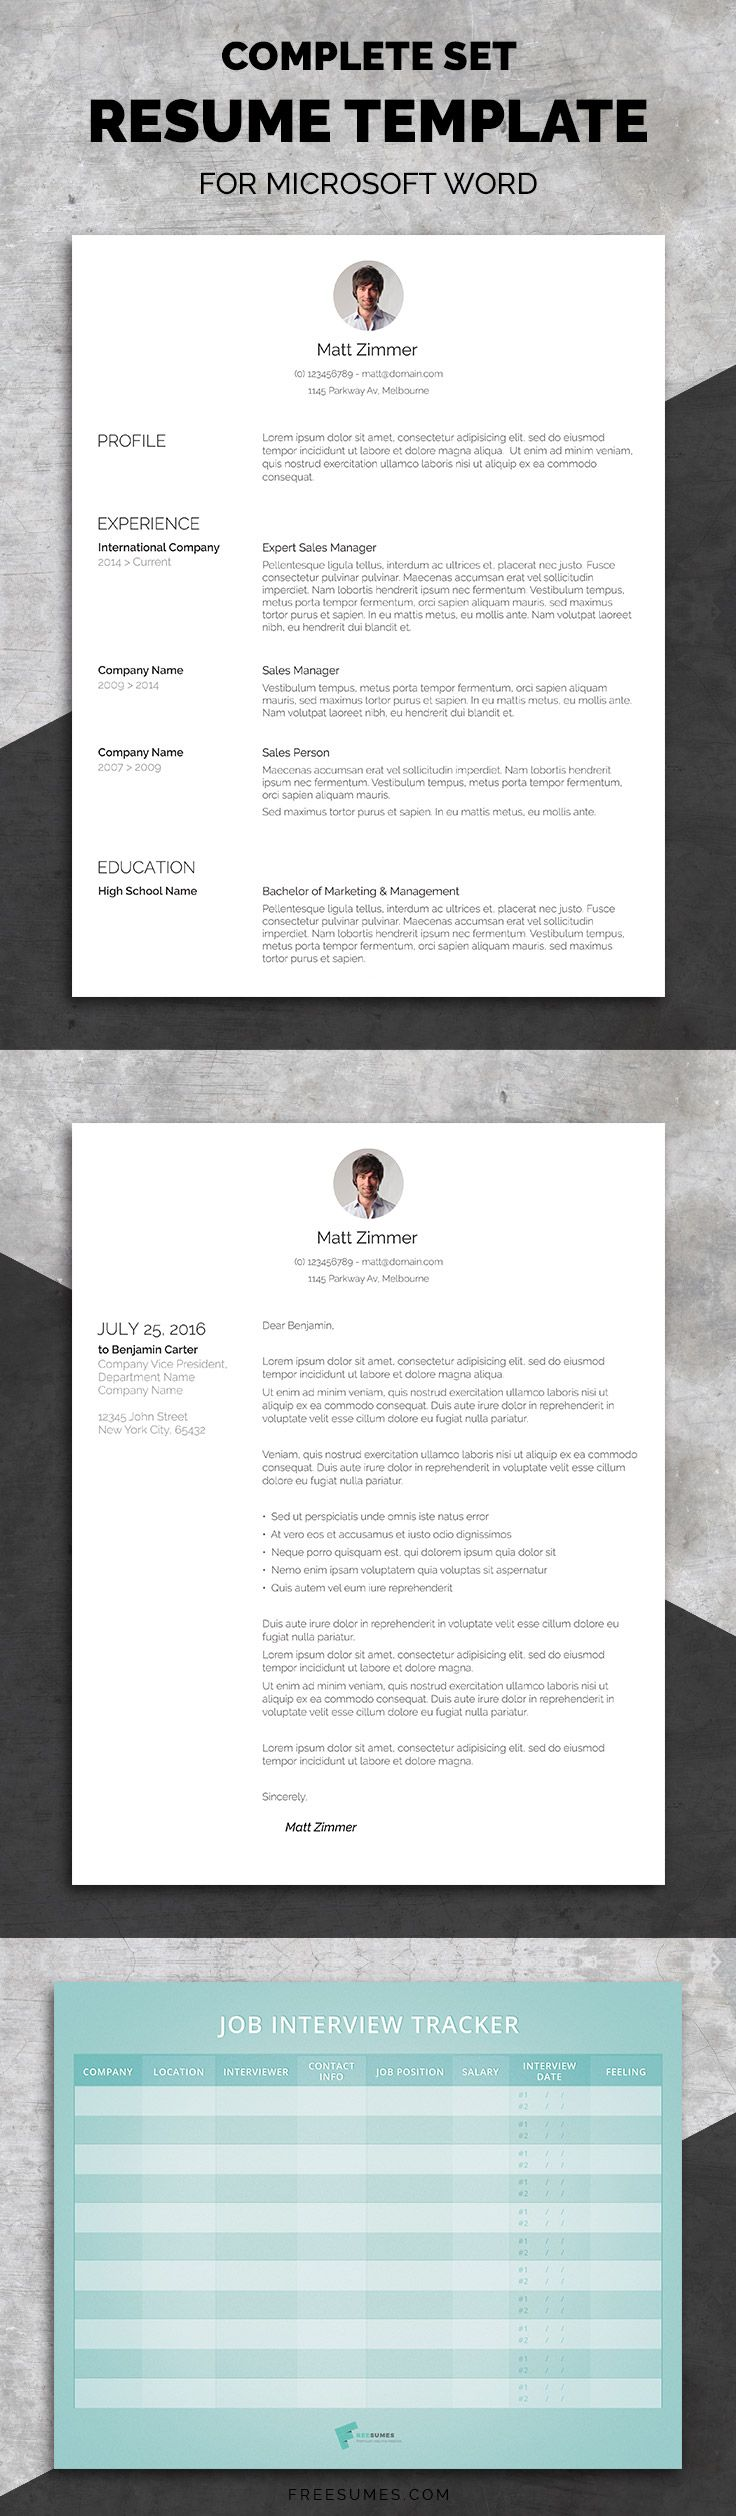 Professional Resume Template Set 71 best Resume